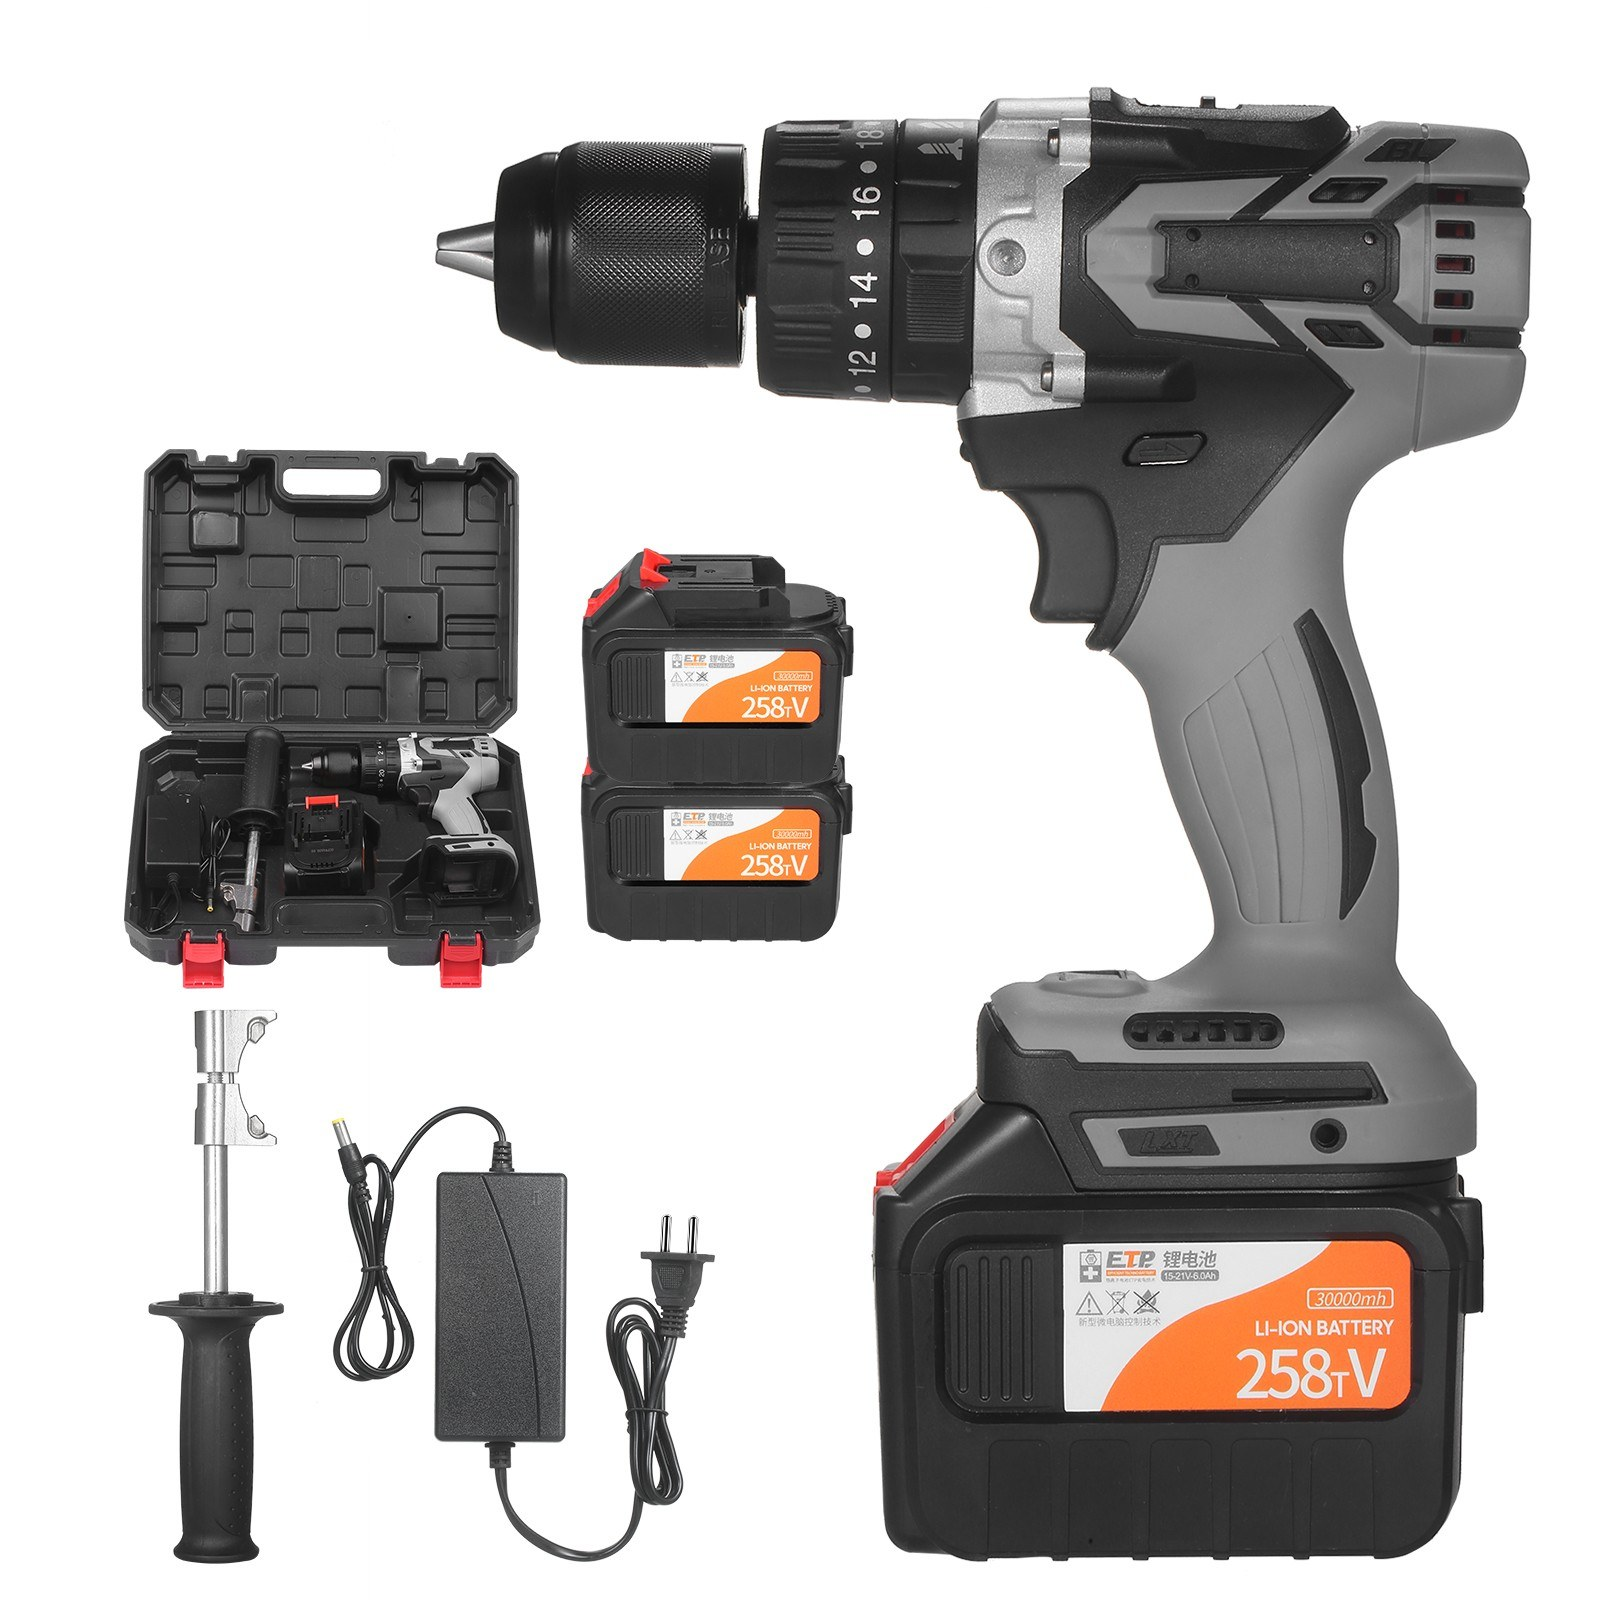 Cafago - 57% OFF Cordless Drill Driver 2Pack 21V 6.0A Batteries Max Torque 200N.m,free shipping+$96.51